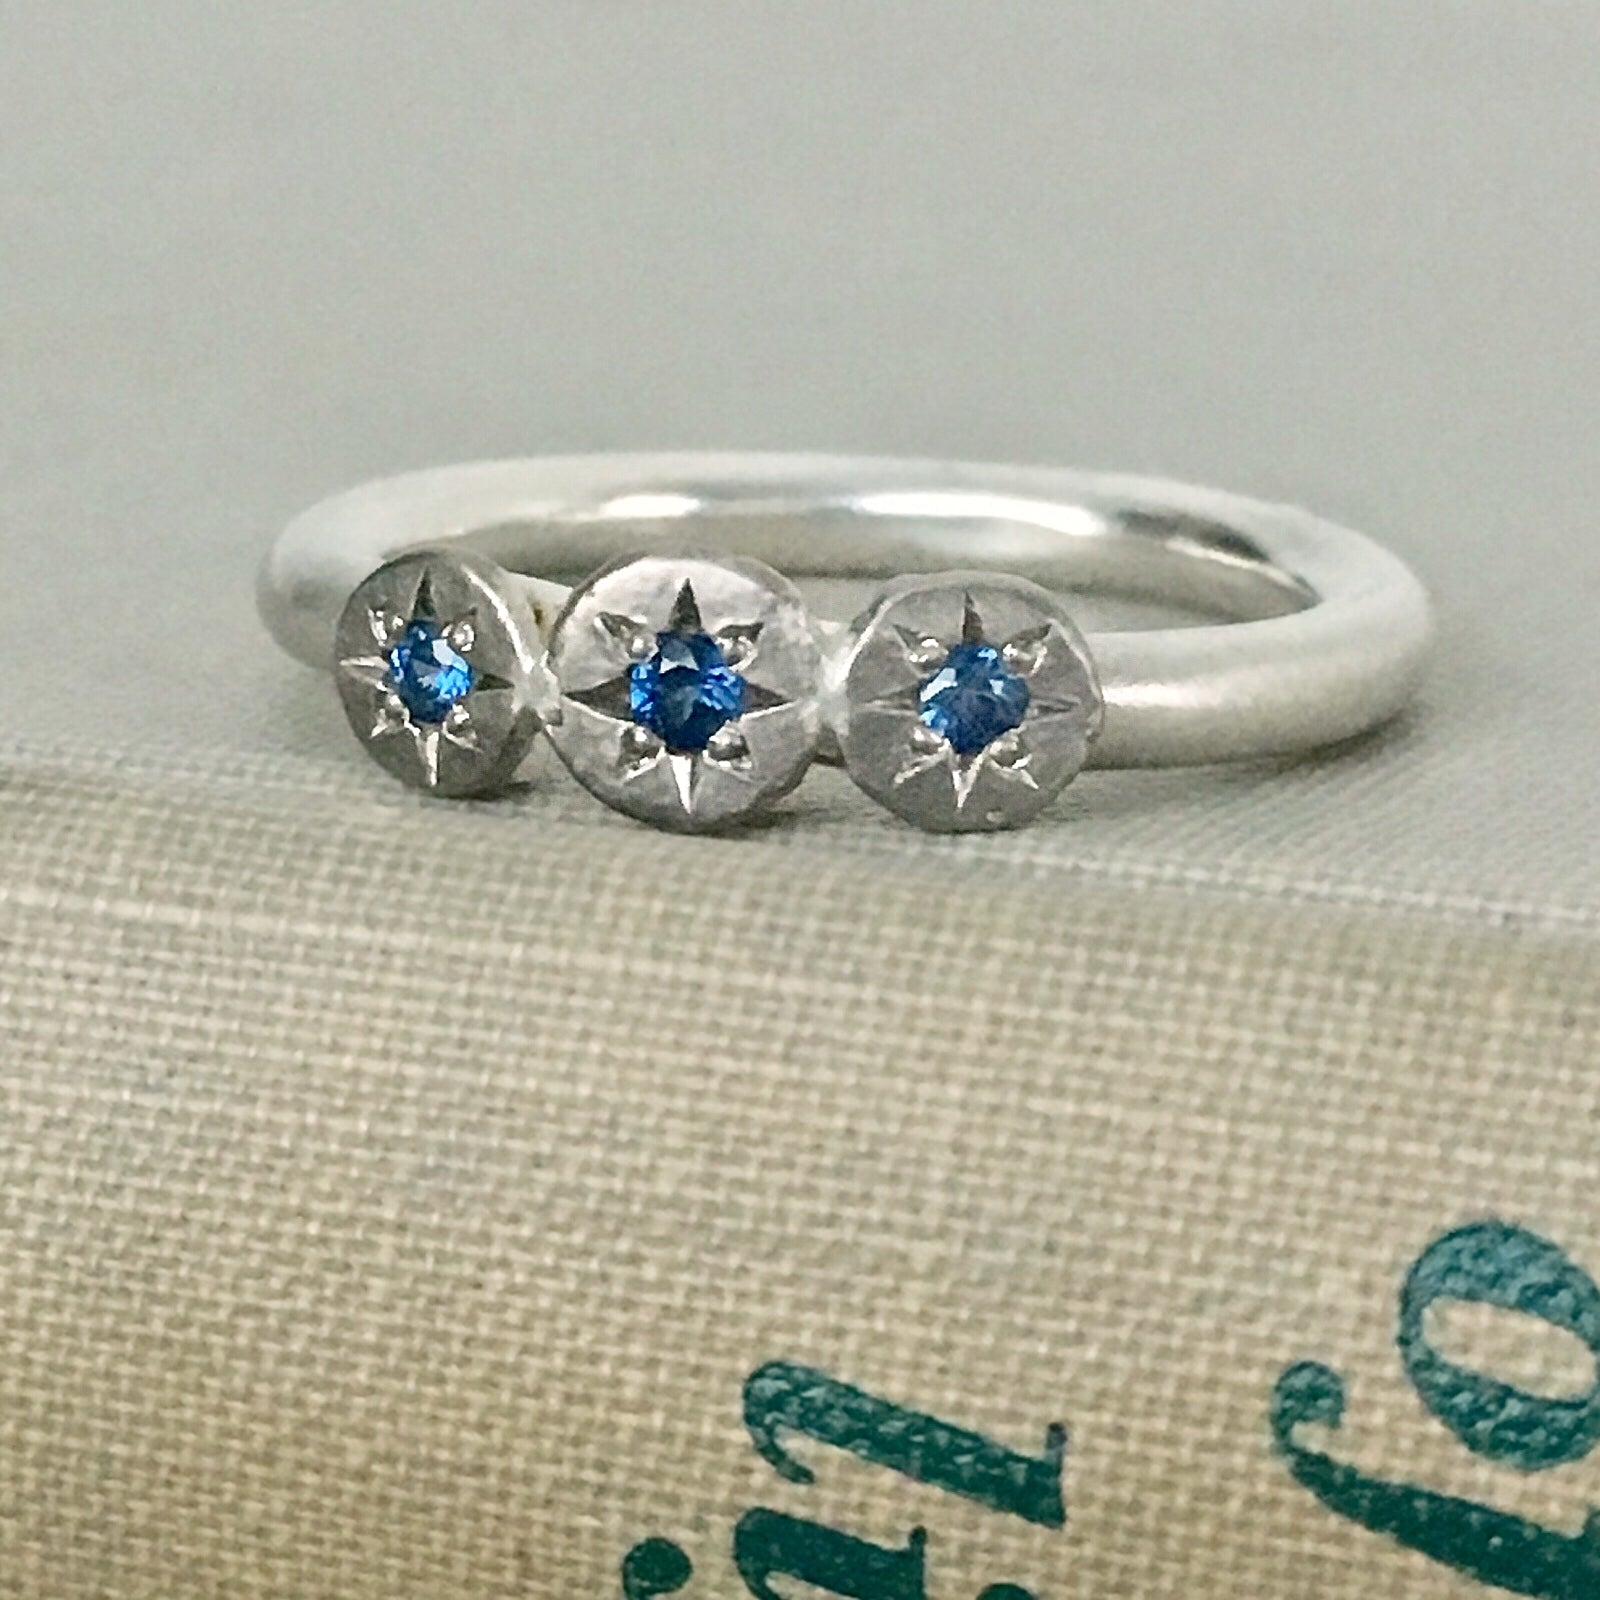 eaa73be0e Three Stone Sapphire Star Ring in Sterling Silver and 14k Palladium White  Gold